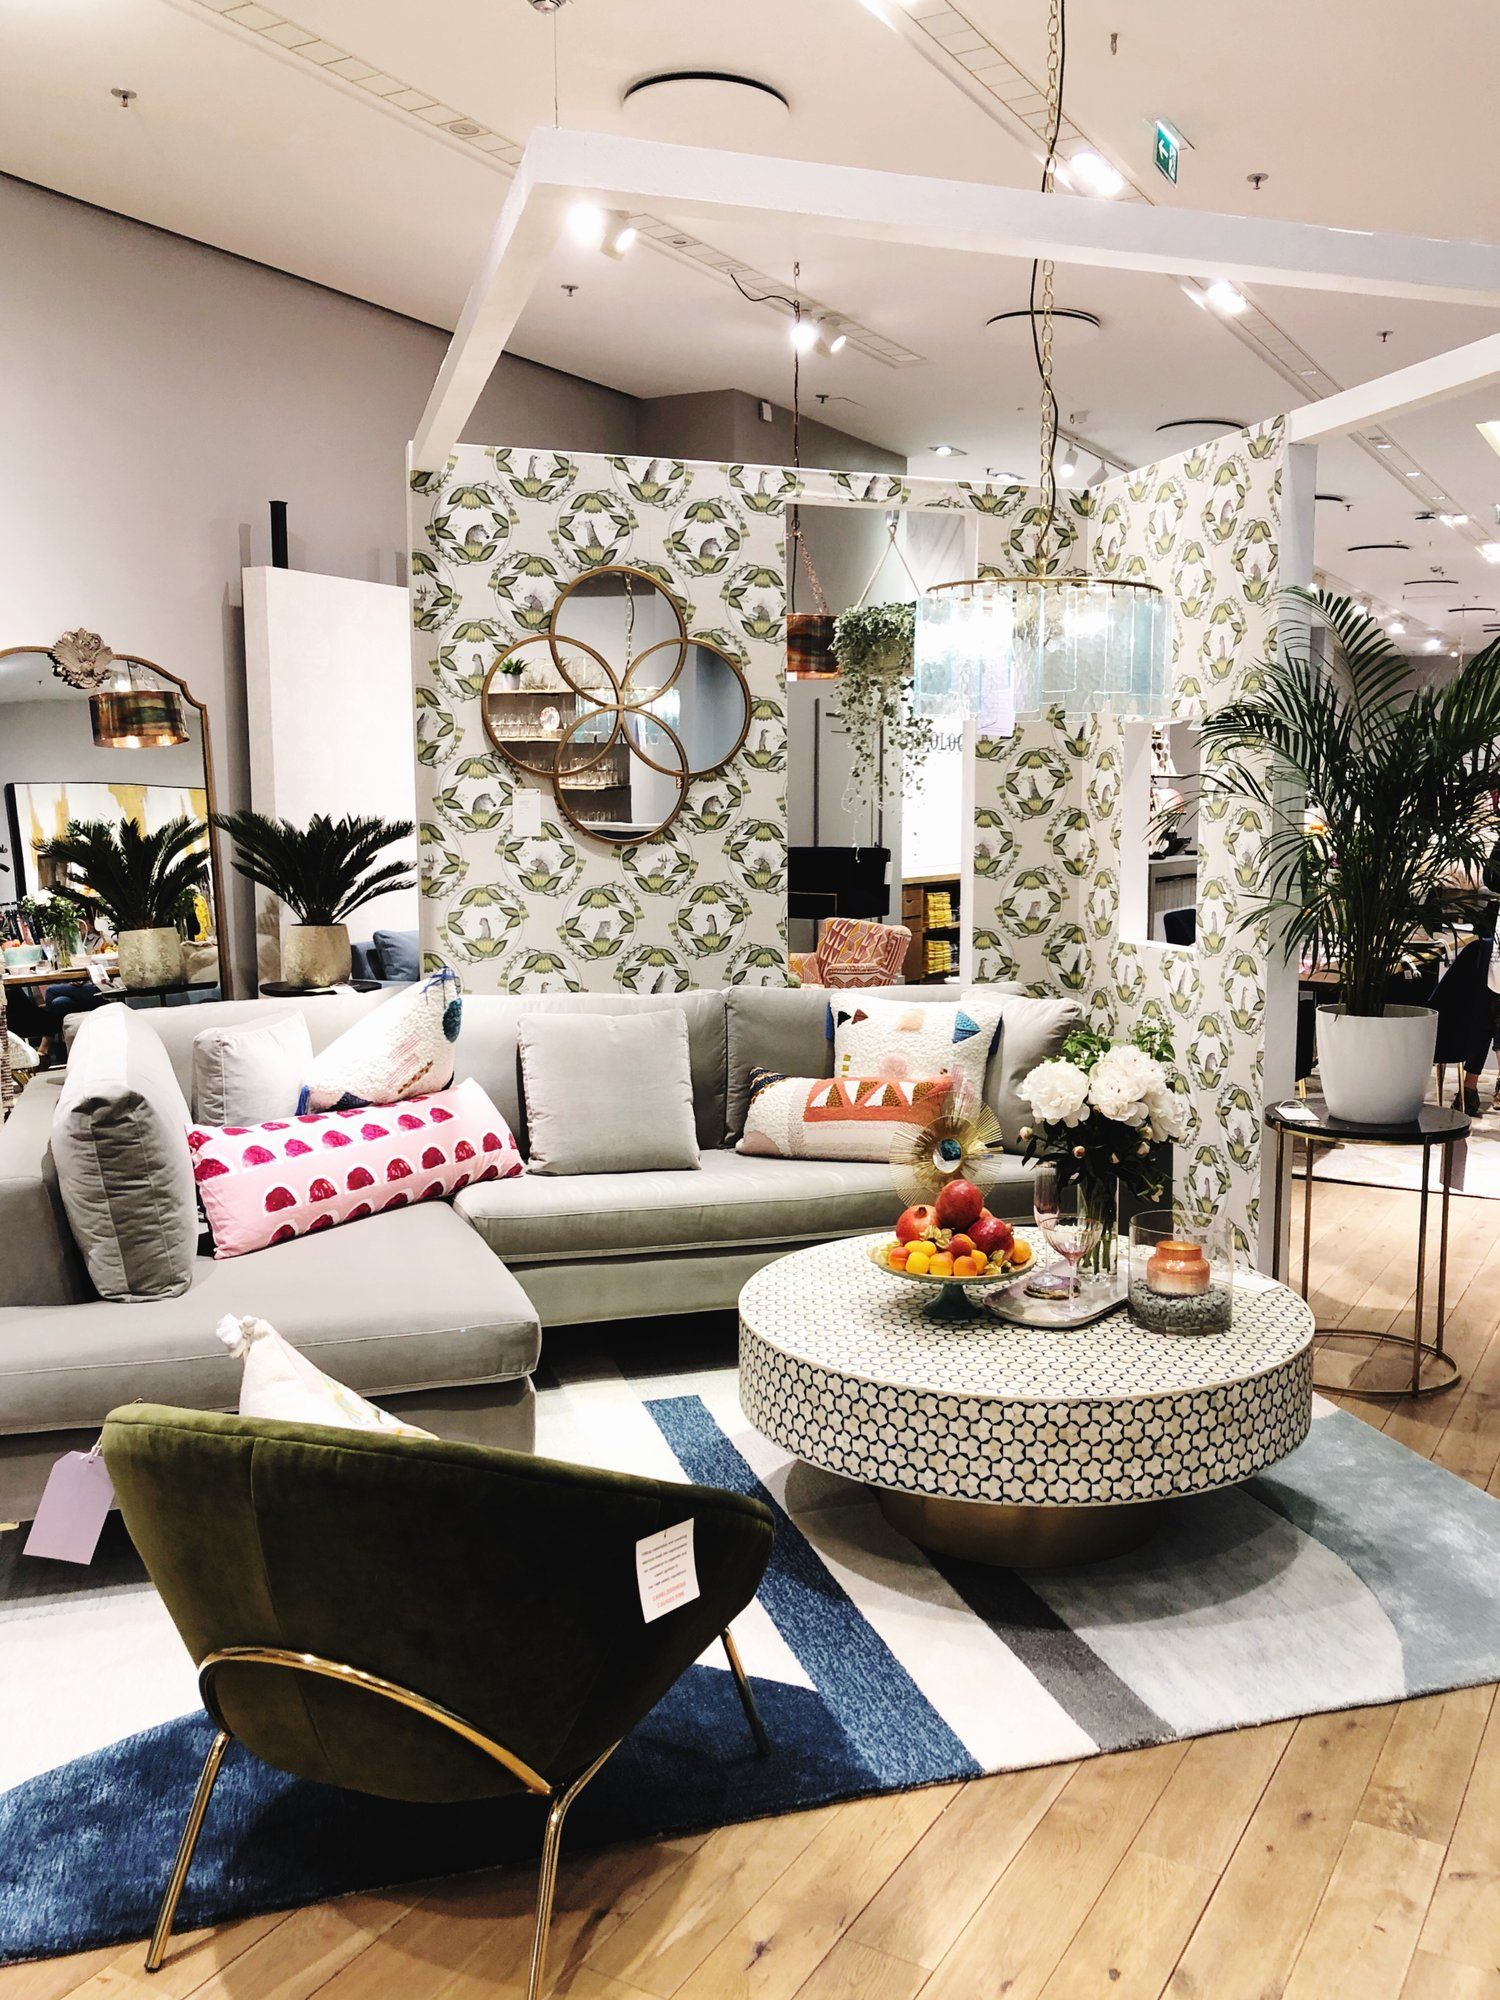 Anthropologie Opens First Store In Germany Dusseldorf Decor8 Anthropologie Living Room Create Your House Rustic Sofa